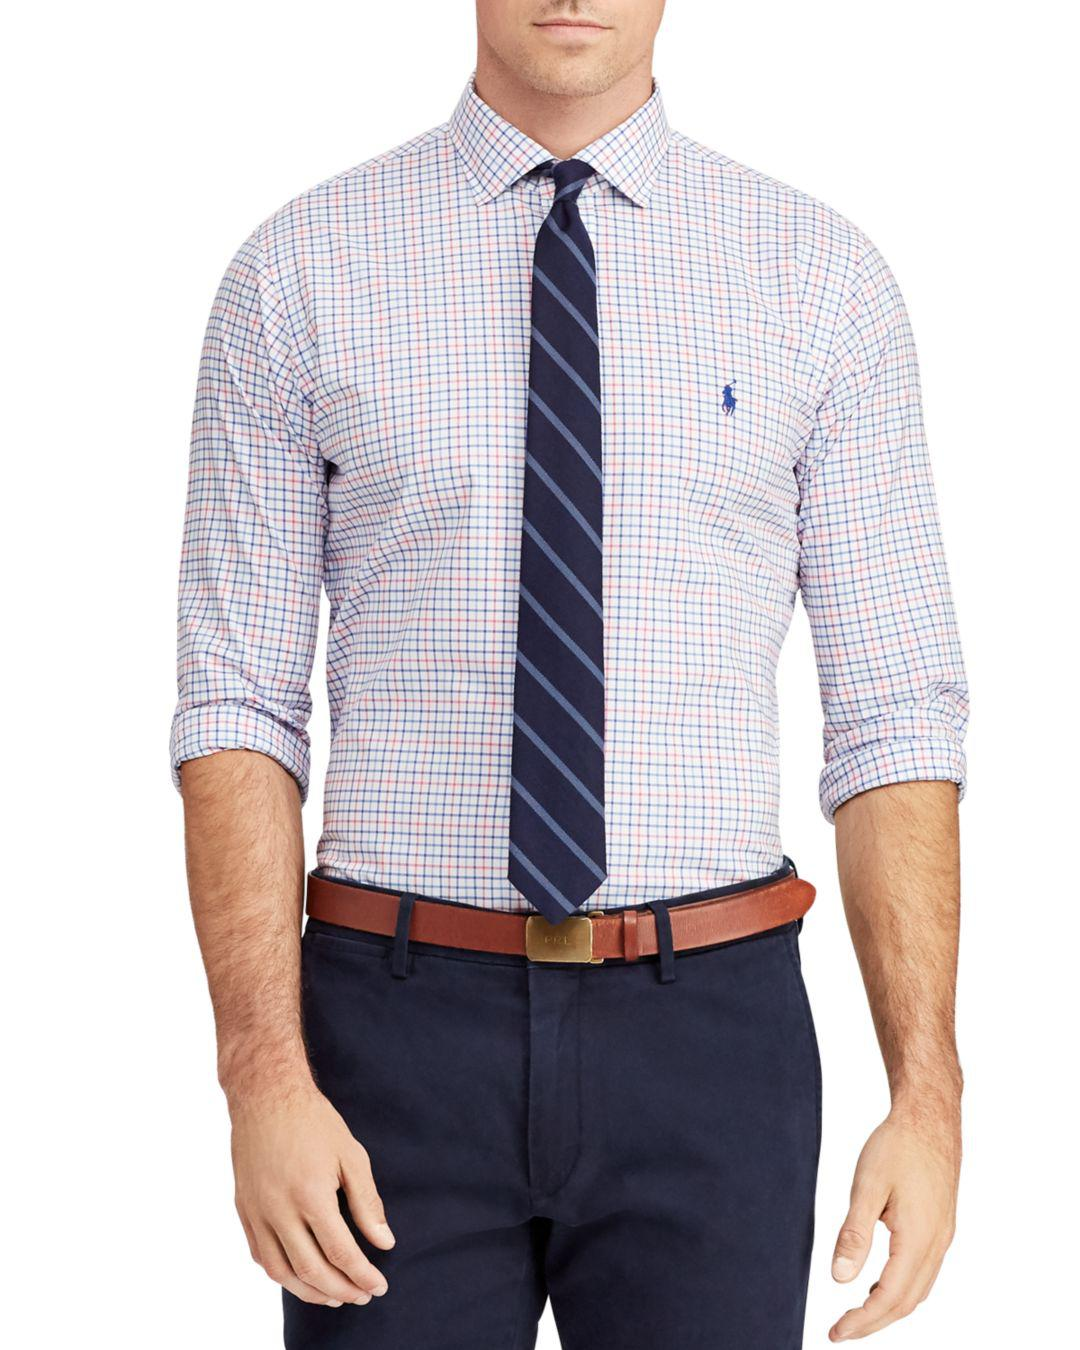 d7e73b0541a03 Polo Ralph Lauren. Men s Blue Windowpane-print Classic Fit Shirt.  90 From  Bloomingdale s. Free shipping with Bloomingdale s on ...